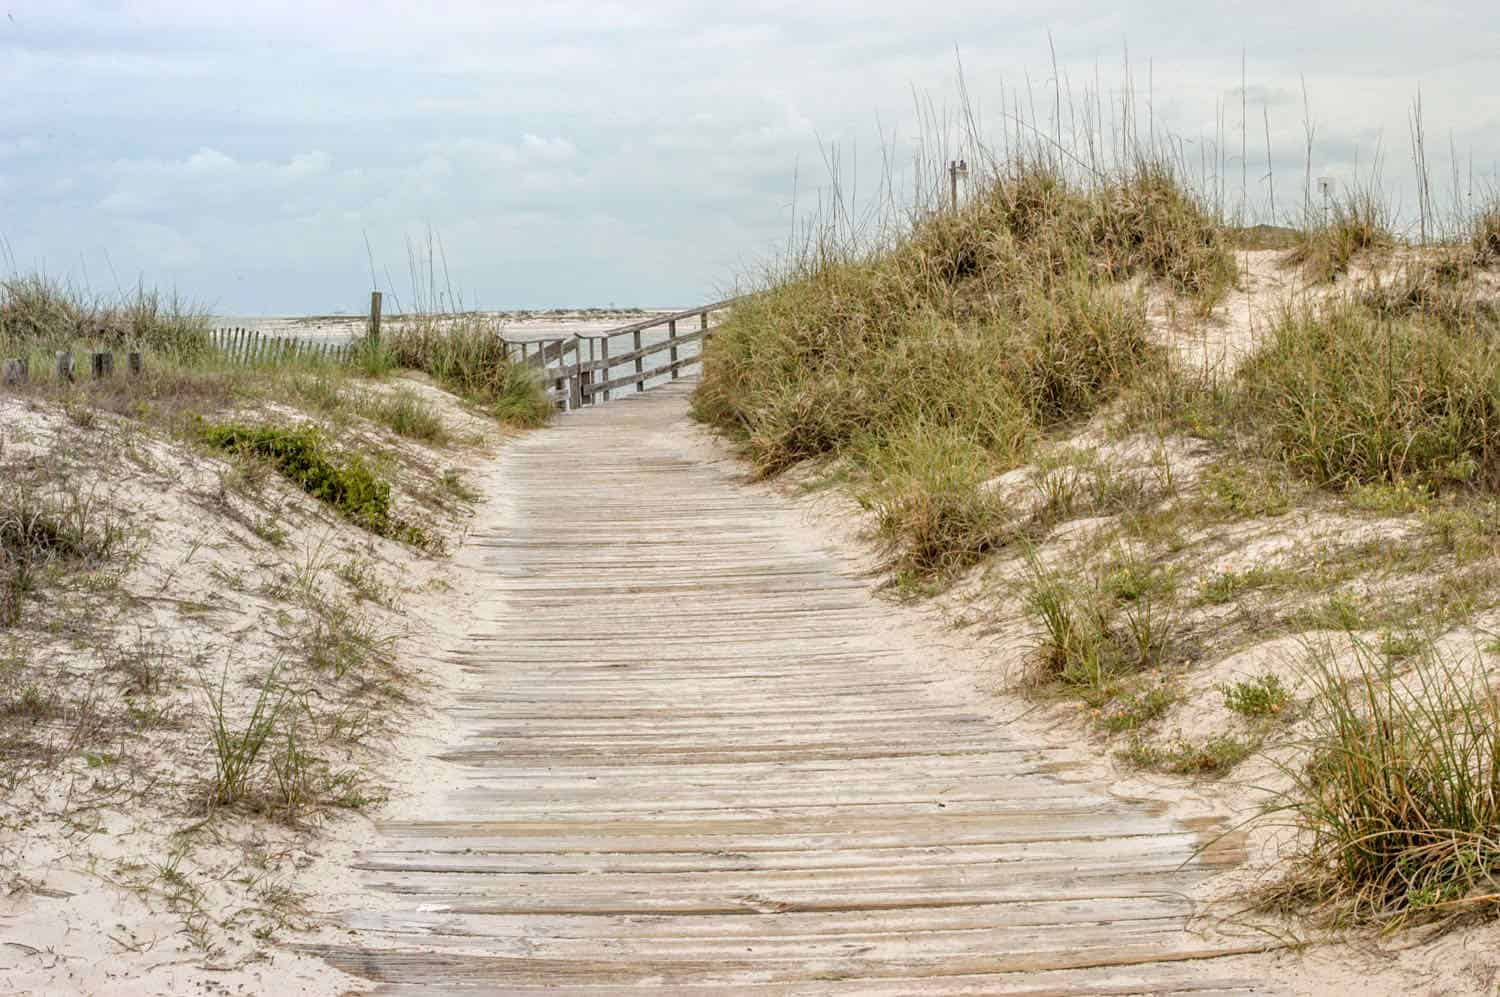 boardwalk over sand dunes leading to the beach at Dauphin Island